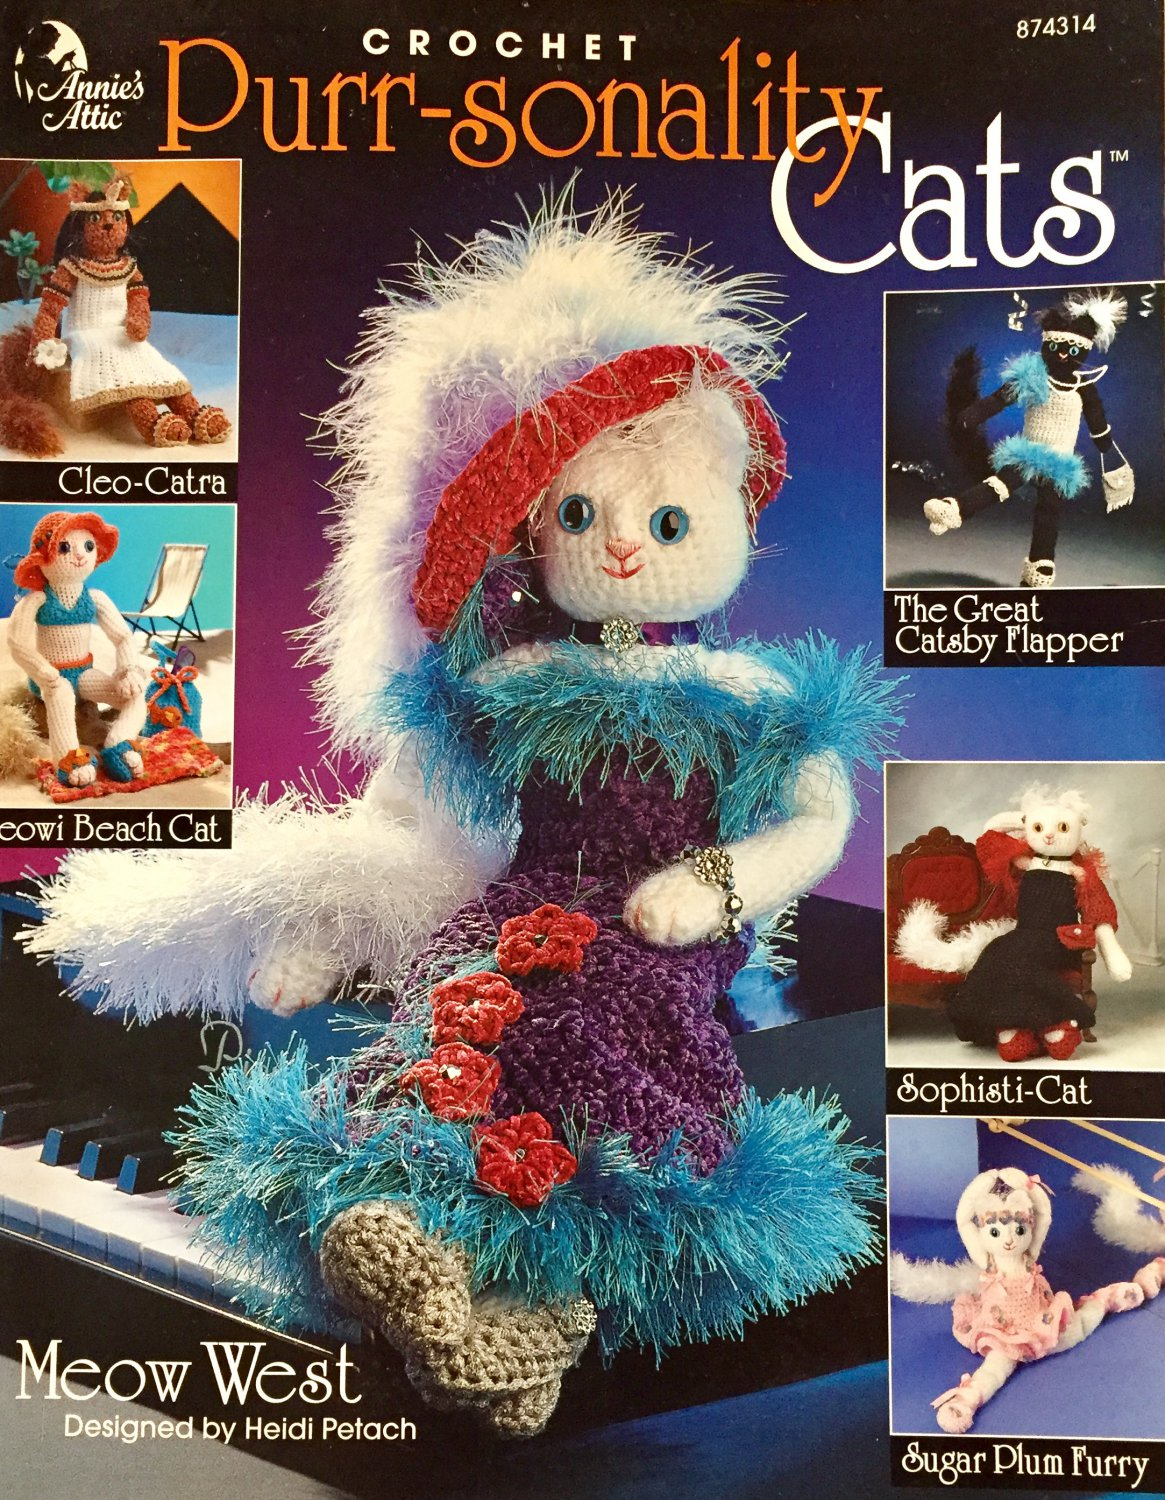 Purr-sonality Cats Annie's Attic 874314 Crochet Pattern